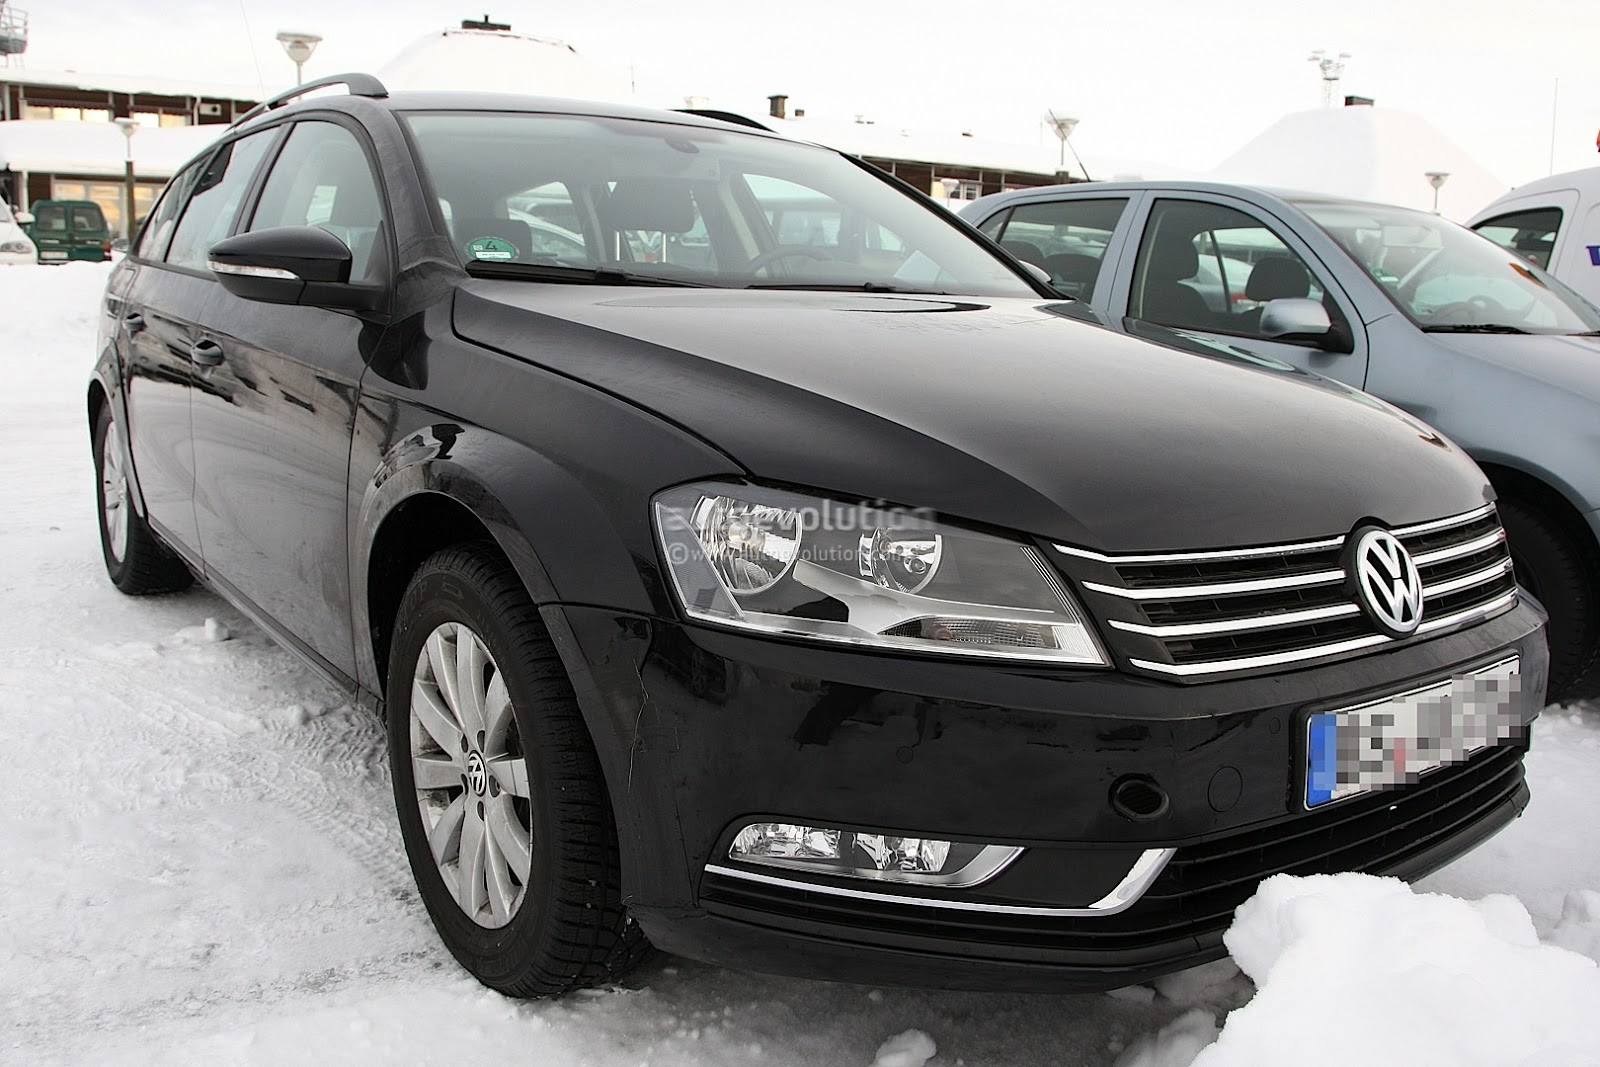 2014 volkswagen passat release date and price ahlicars. Black Bedroom Furniture Sets. Home Design Ideas